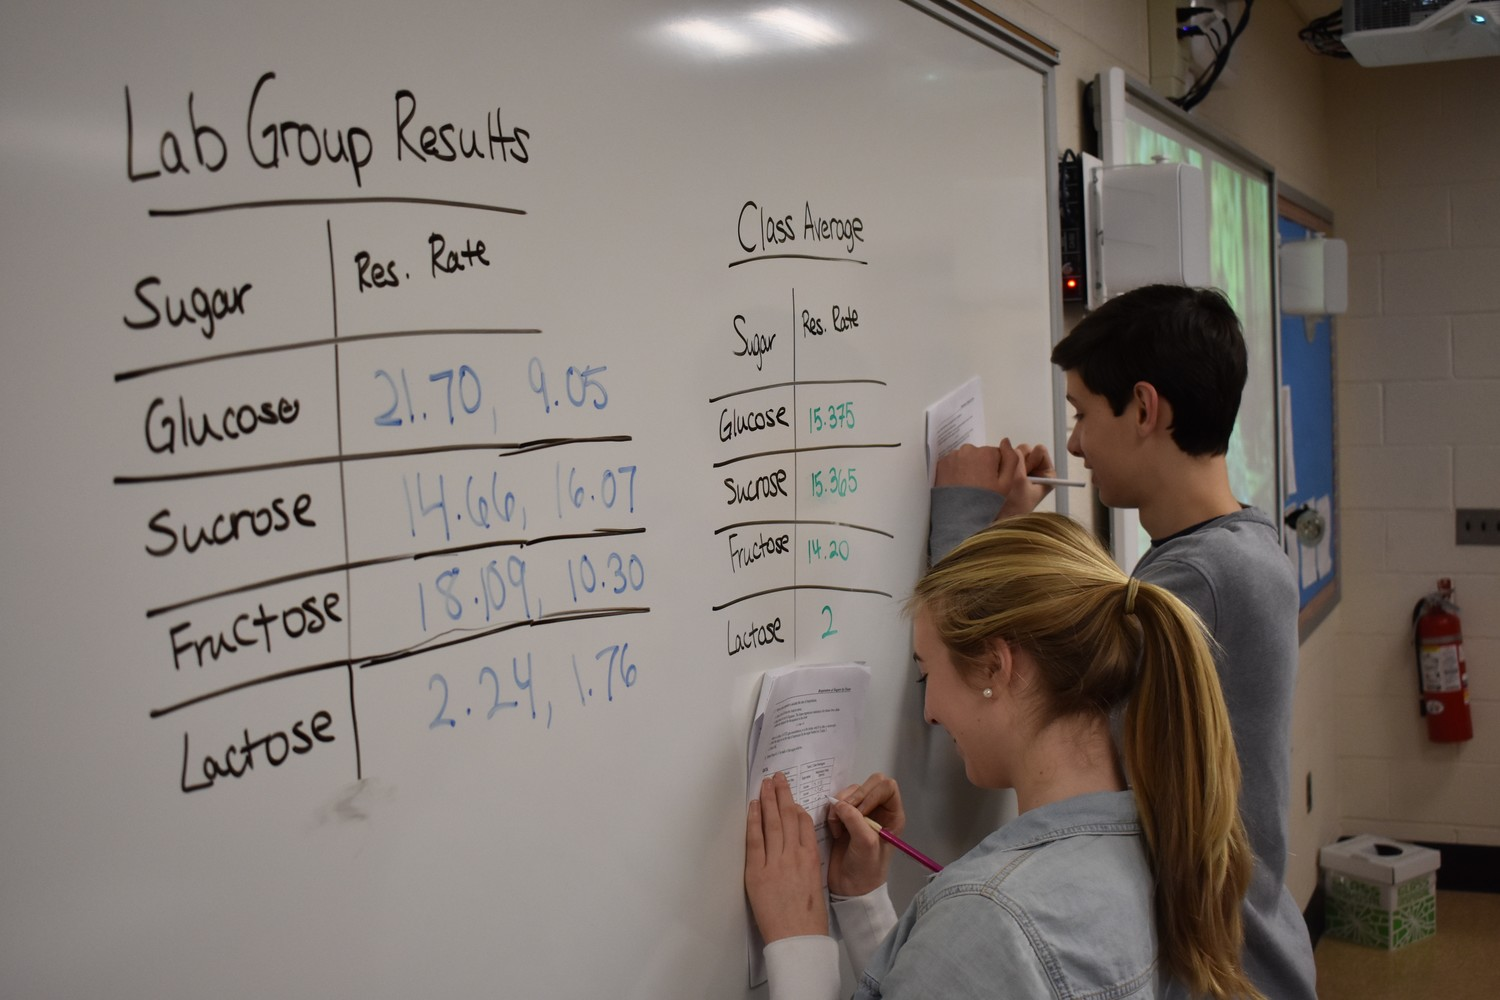 South Side High School freshmen Anna O'Sullivan and Dylan Saltzman recorded data gathered with carbon dioxide sensors during a lab on alcohol fermentation.